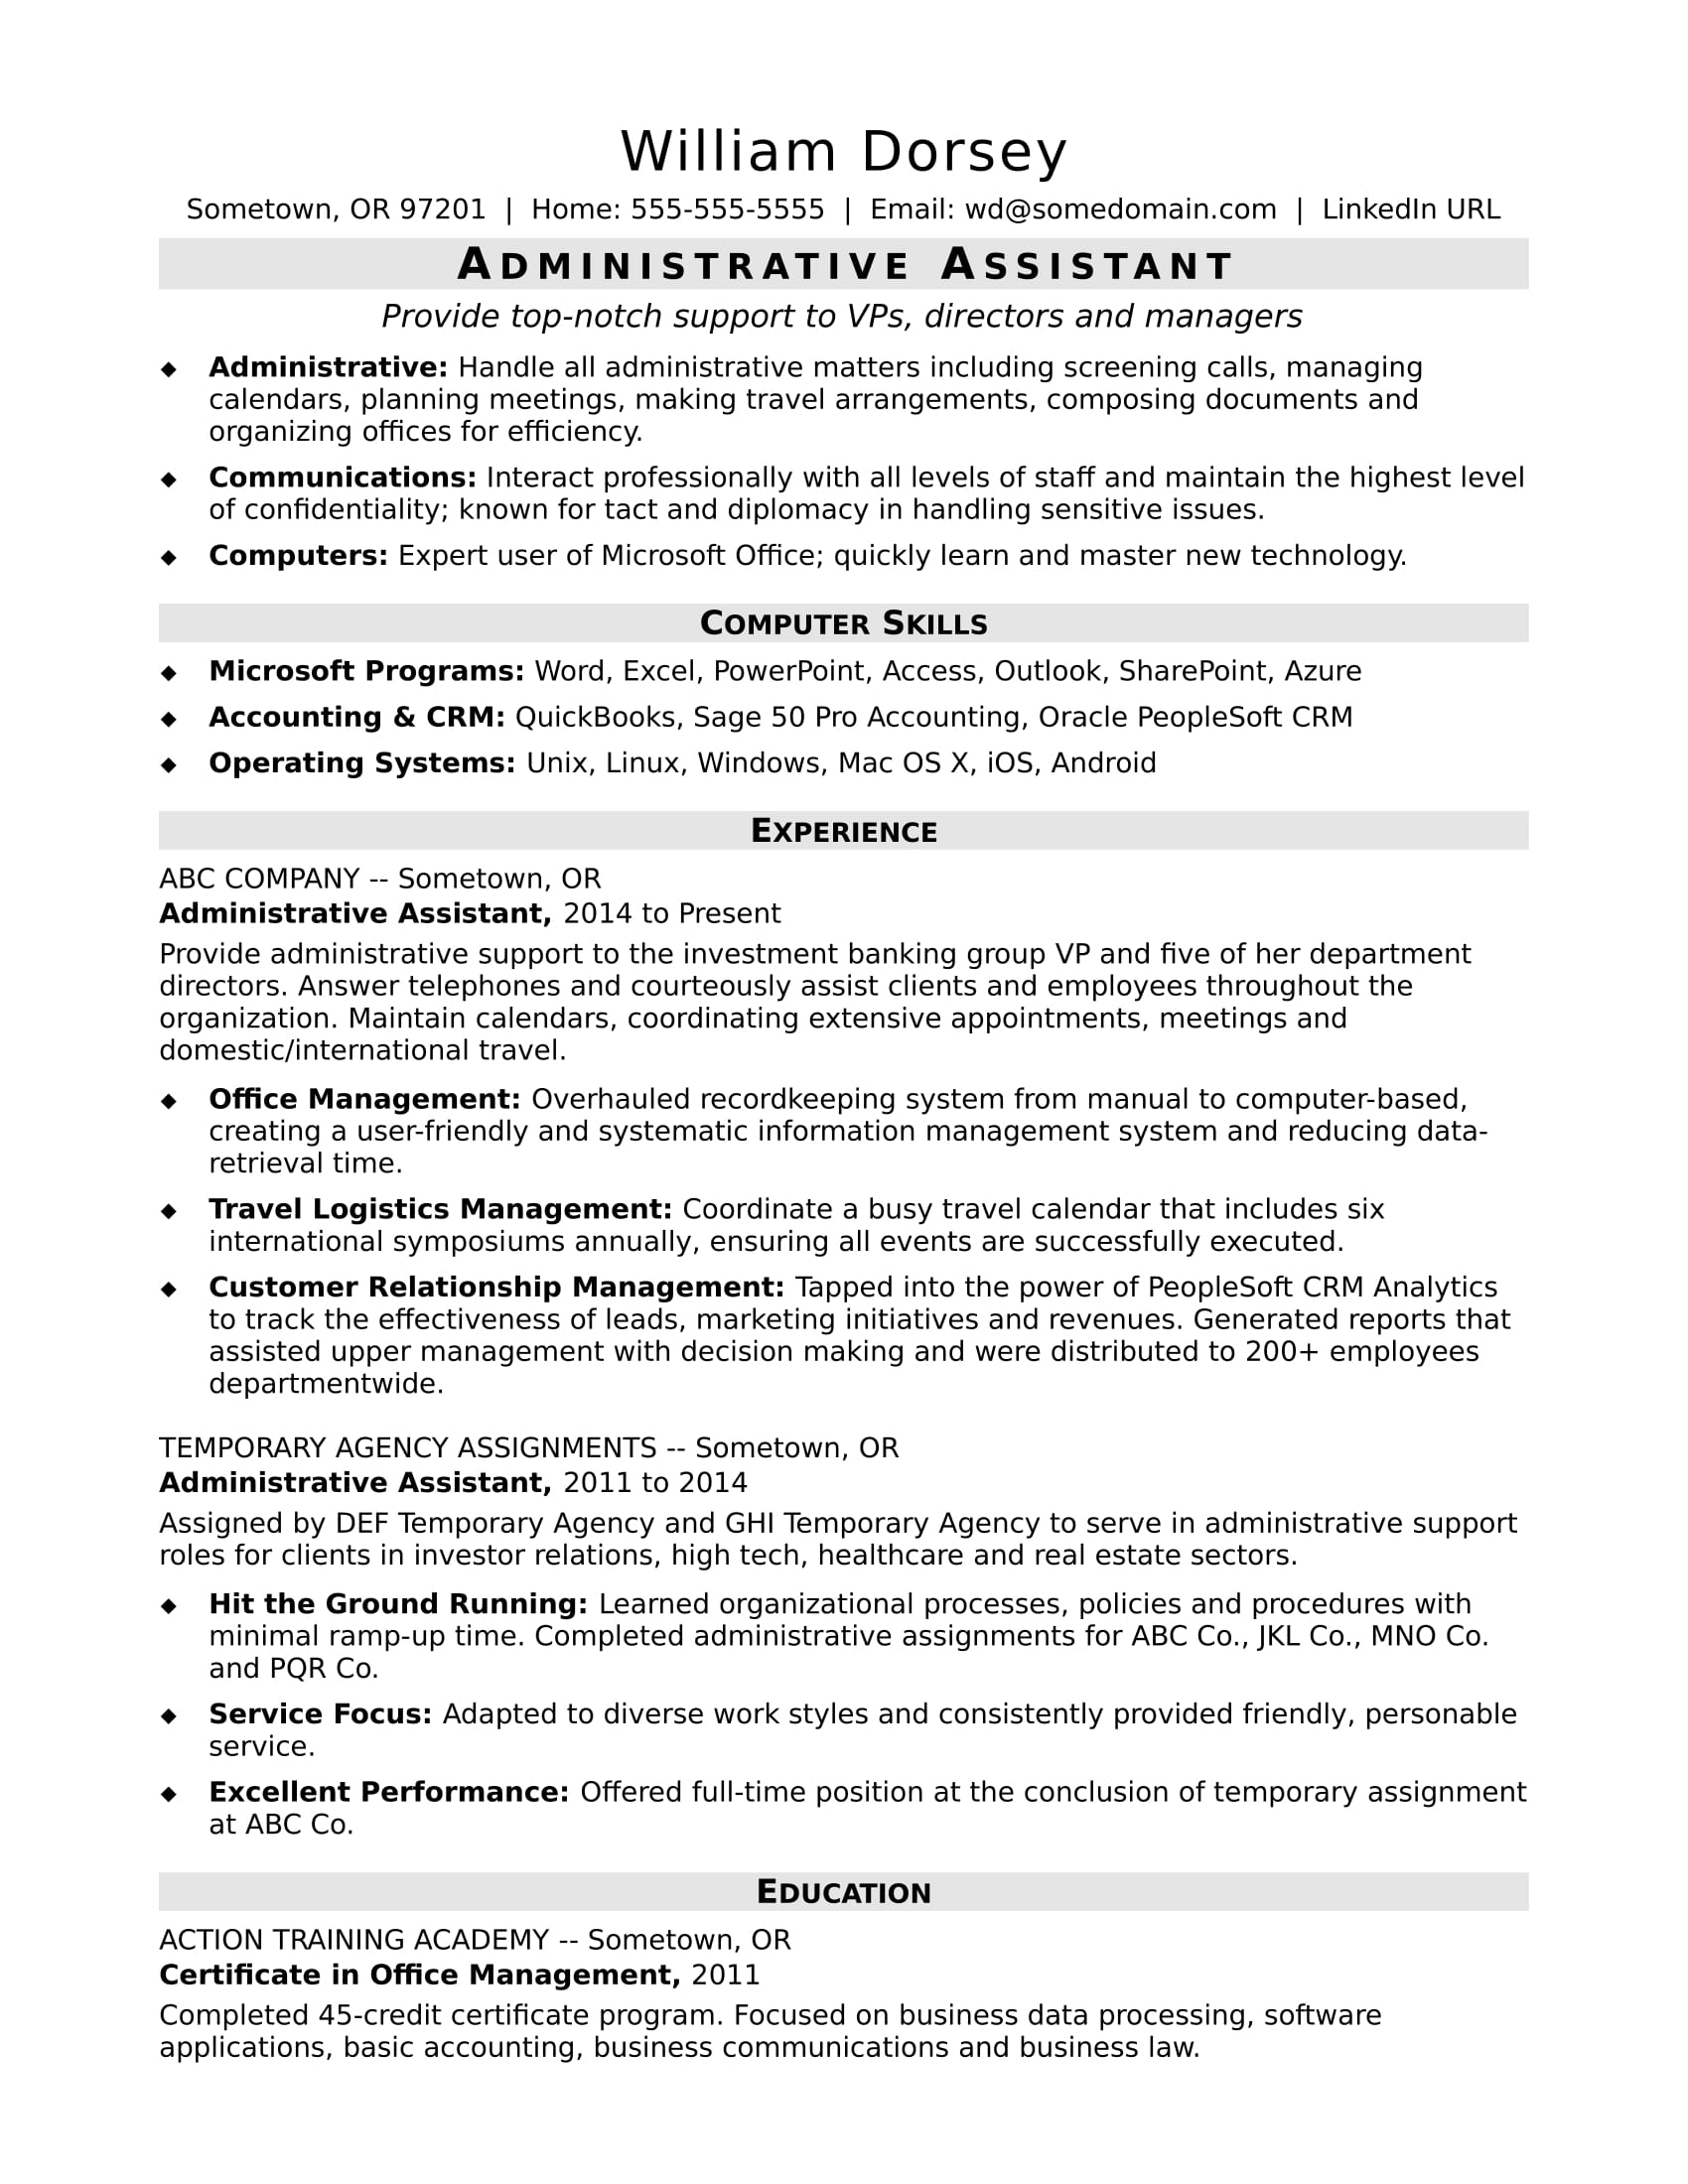 Resume Samples For Administrative Assistant Midlevel Administrative Assistant Resume Sample  Monster